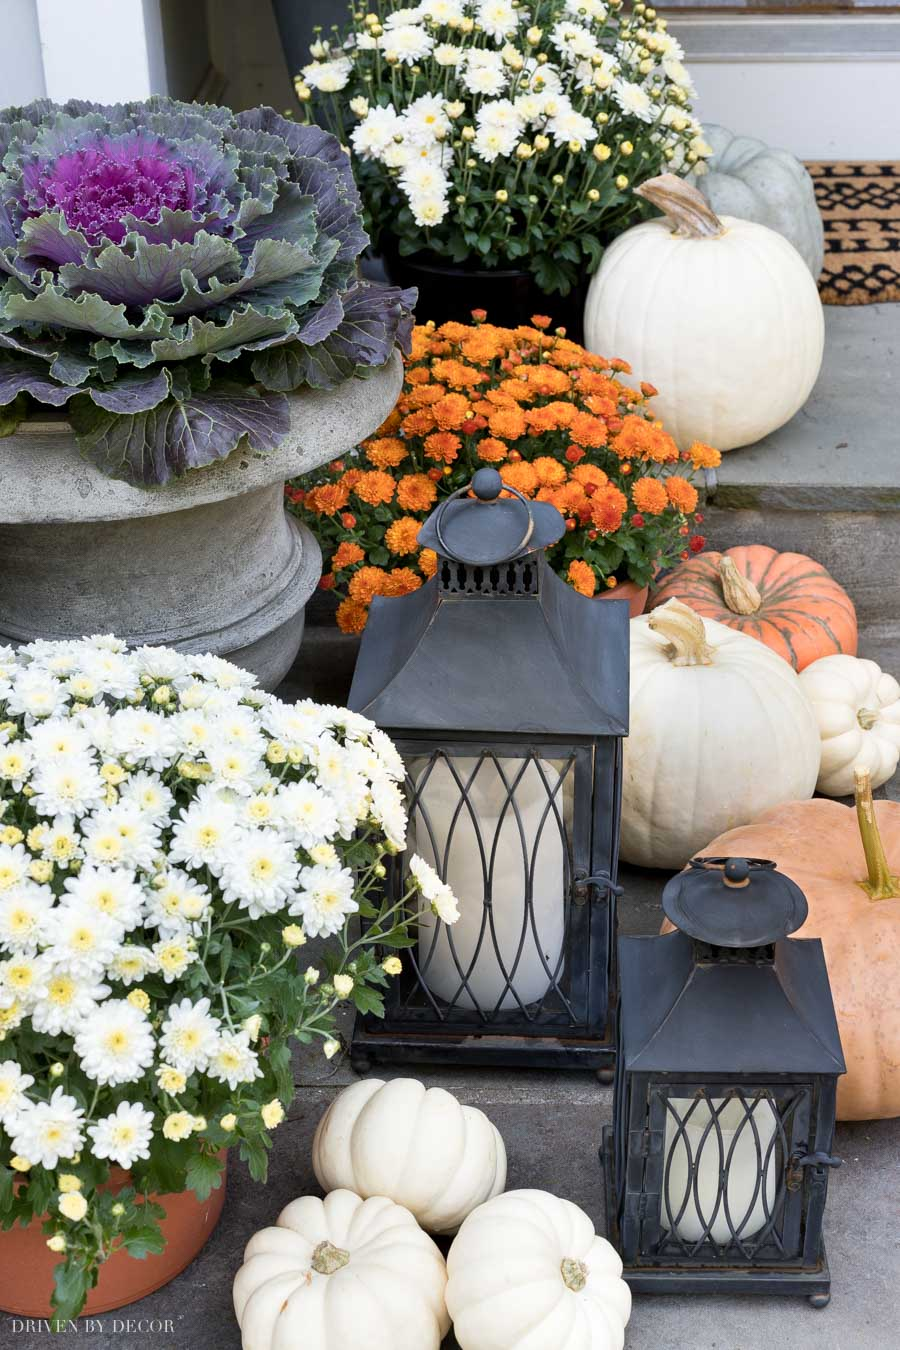 These cute lanterns come as part of a trio (with a third larger one) and are perfect for decorating your front porch!